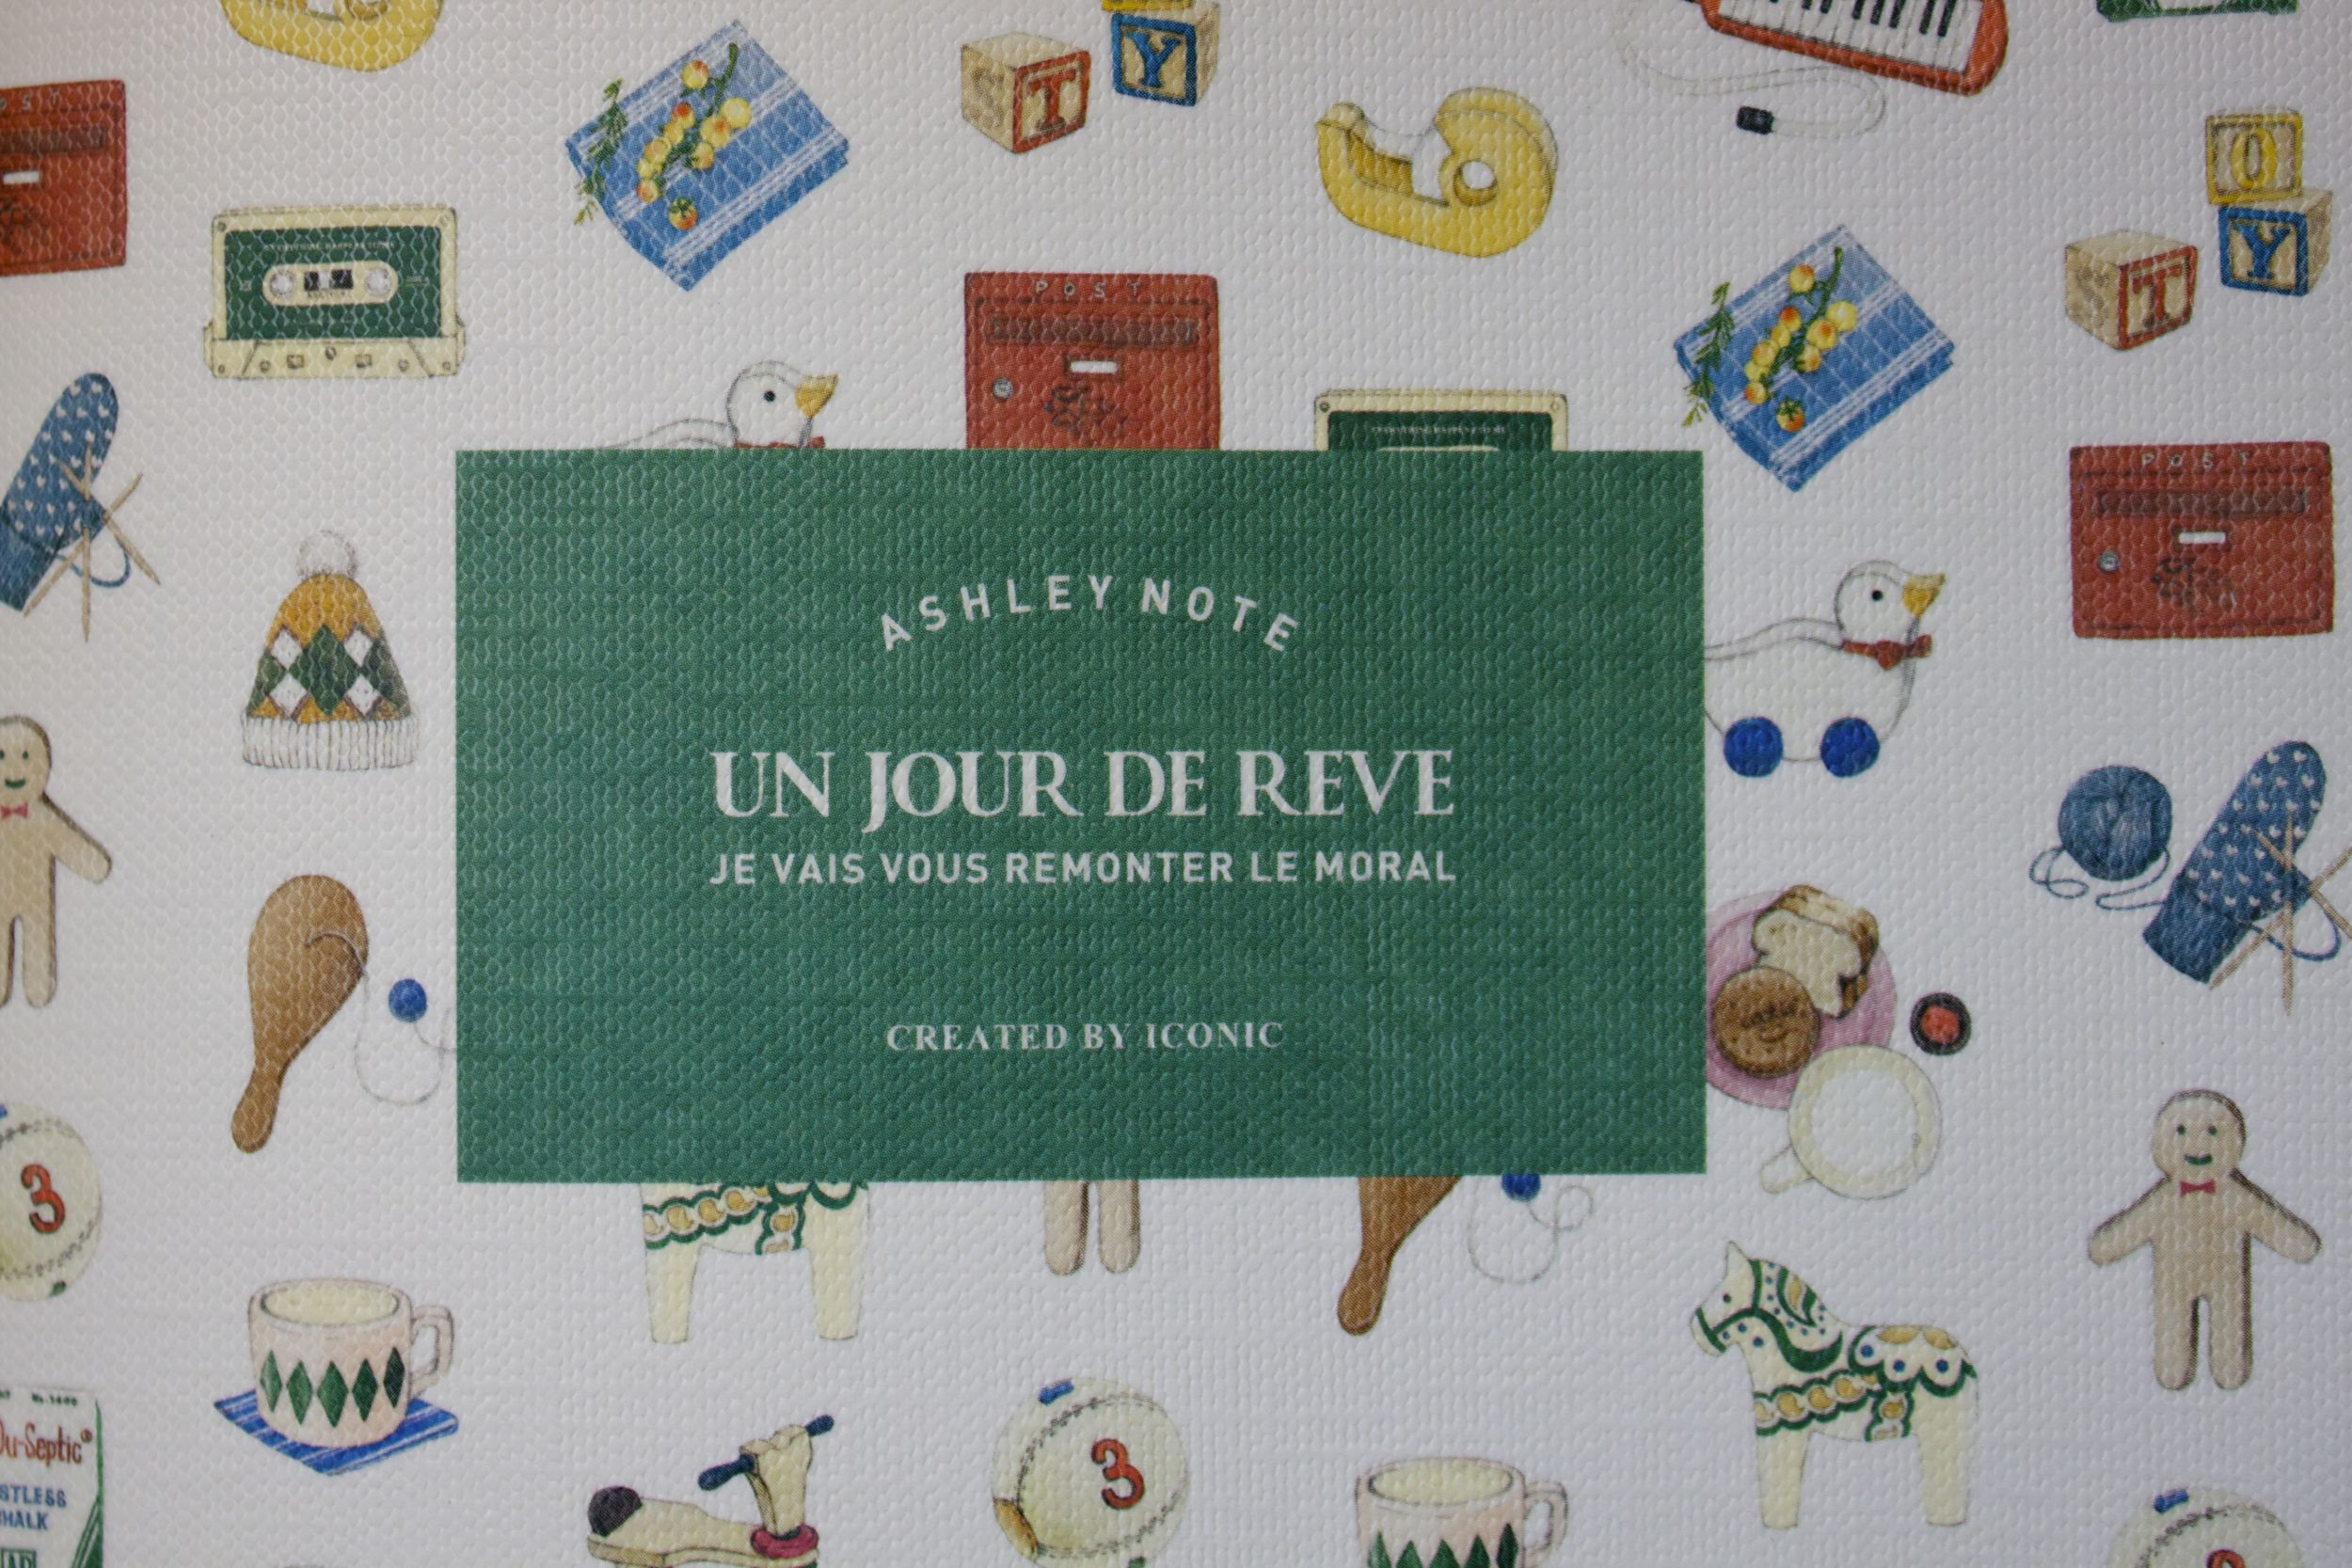 French appears on the cover of the Ashley notebooks